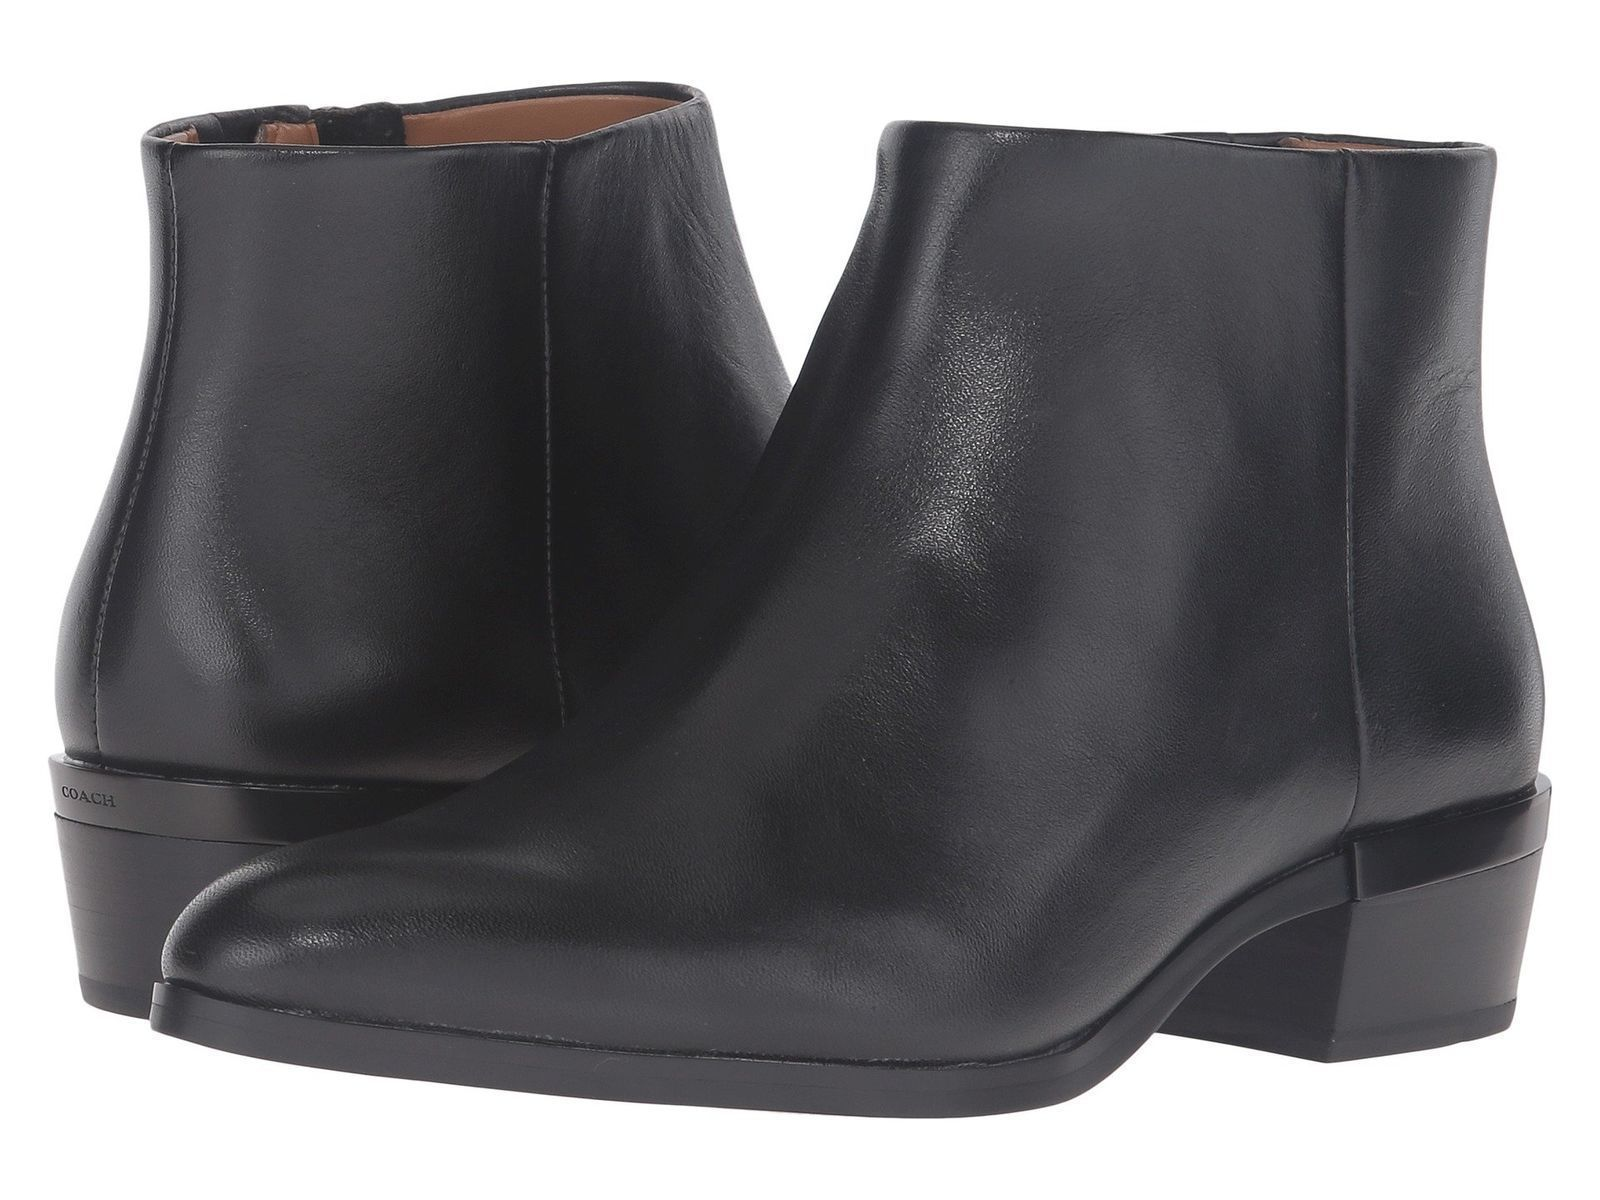 cd9e7c0fcb3 COACH Montana Women s Boots Shoes Casual and 50 similar items. S l1600